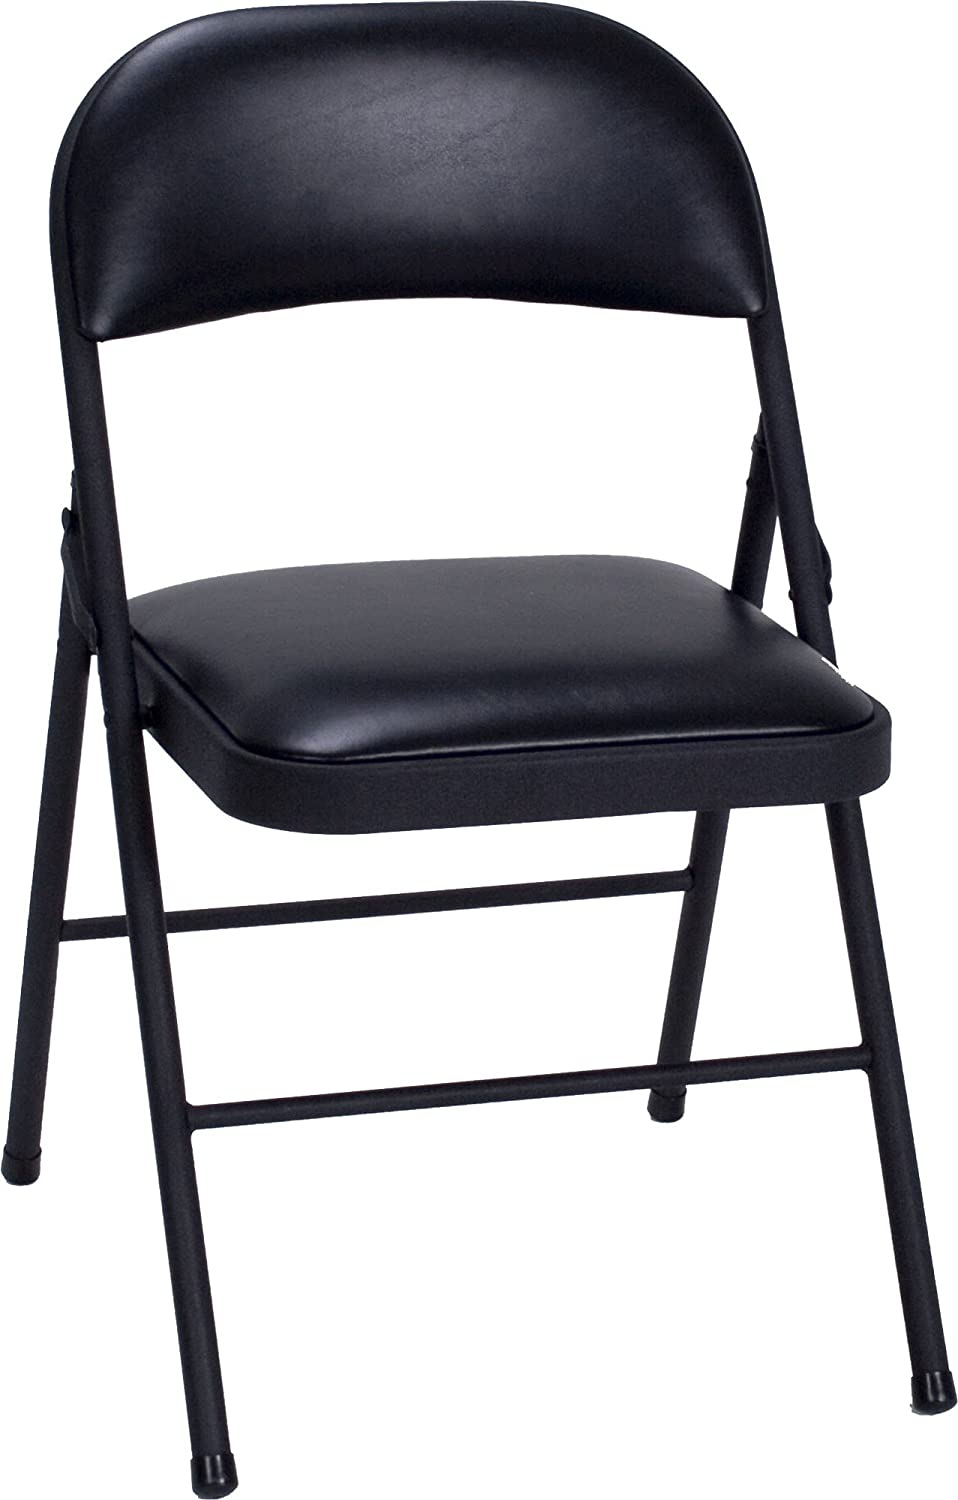 Amazon.com: Cosco Vinyl 4-Pack Folding Chair, Black: Kitchen & Dining